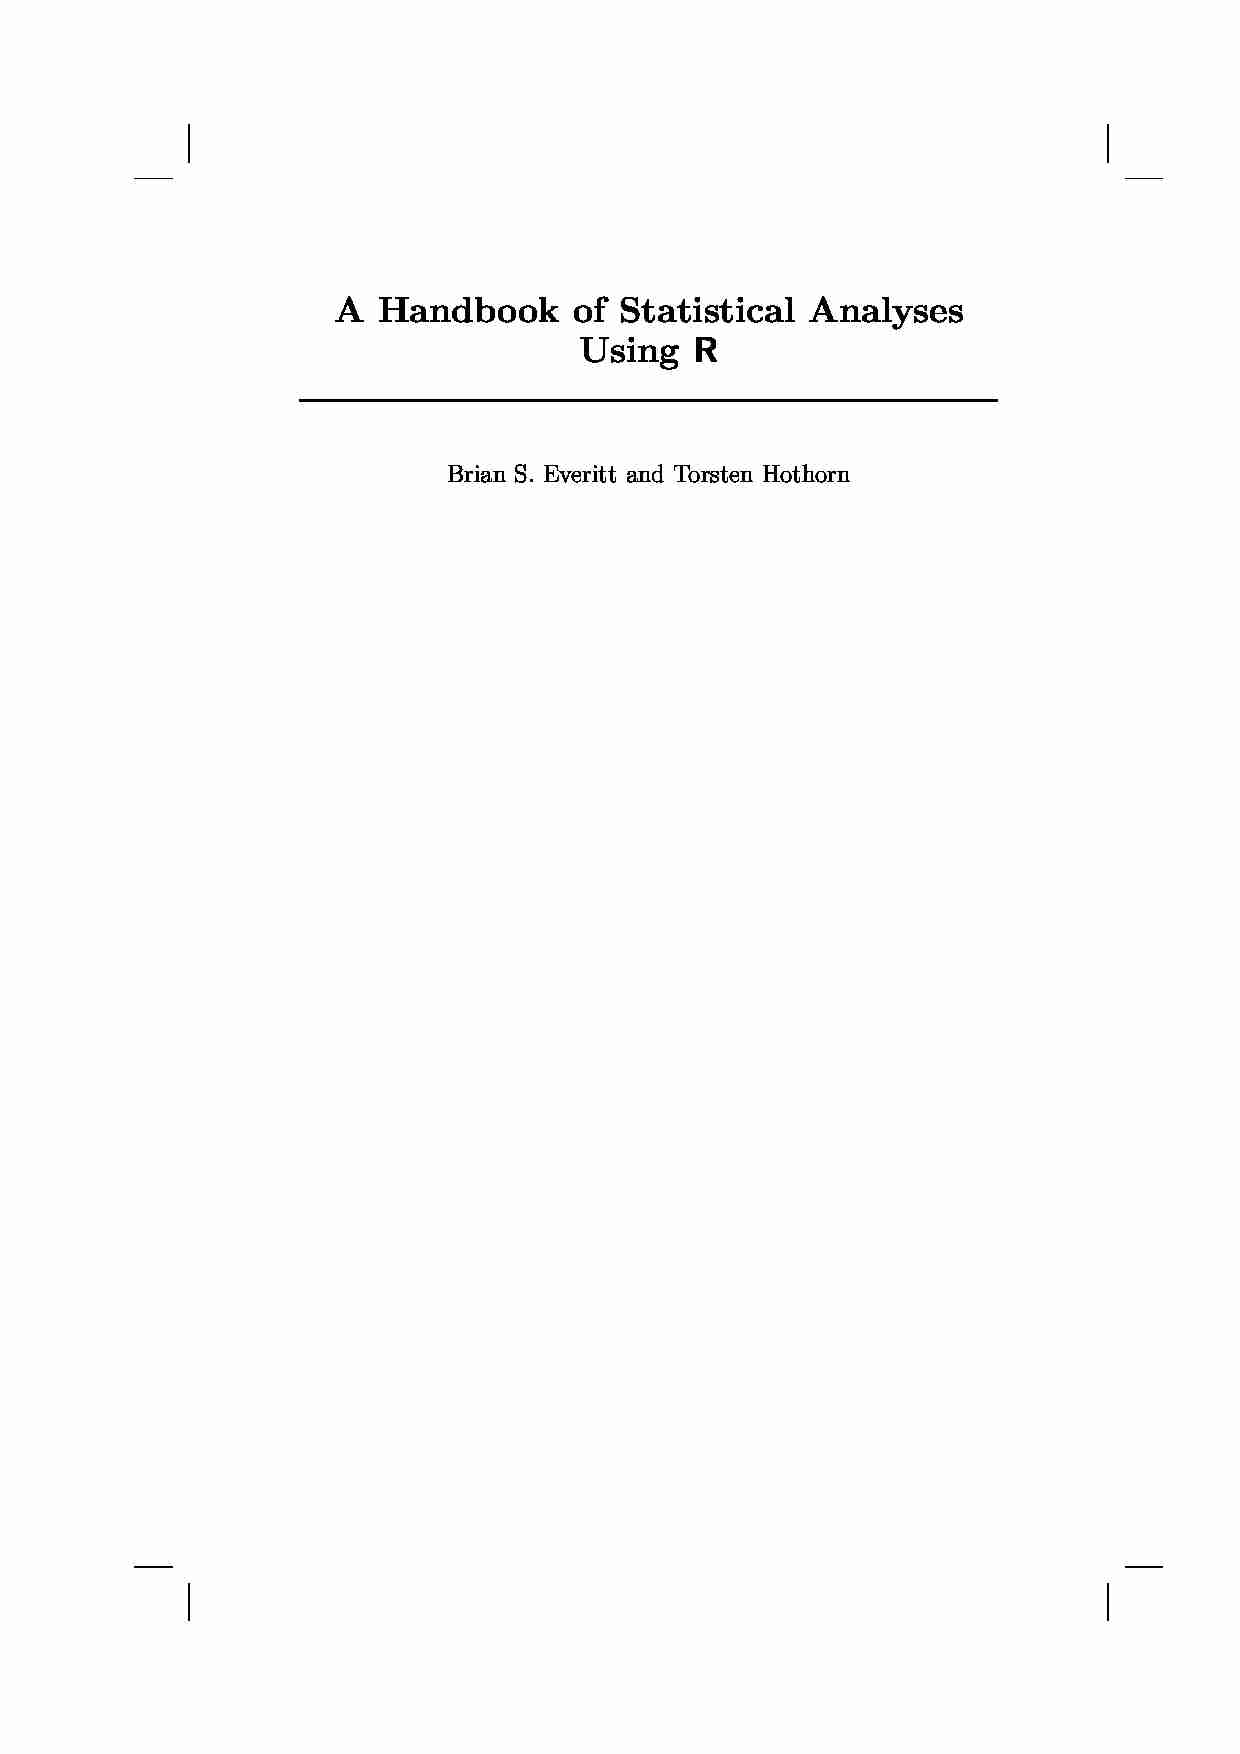 A-Handbook-of-Statistical-Analyses-Using-R- - strona 1